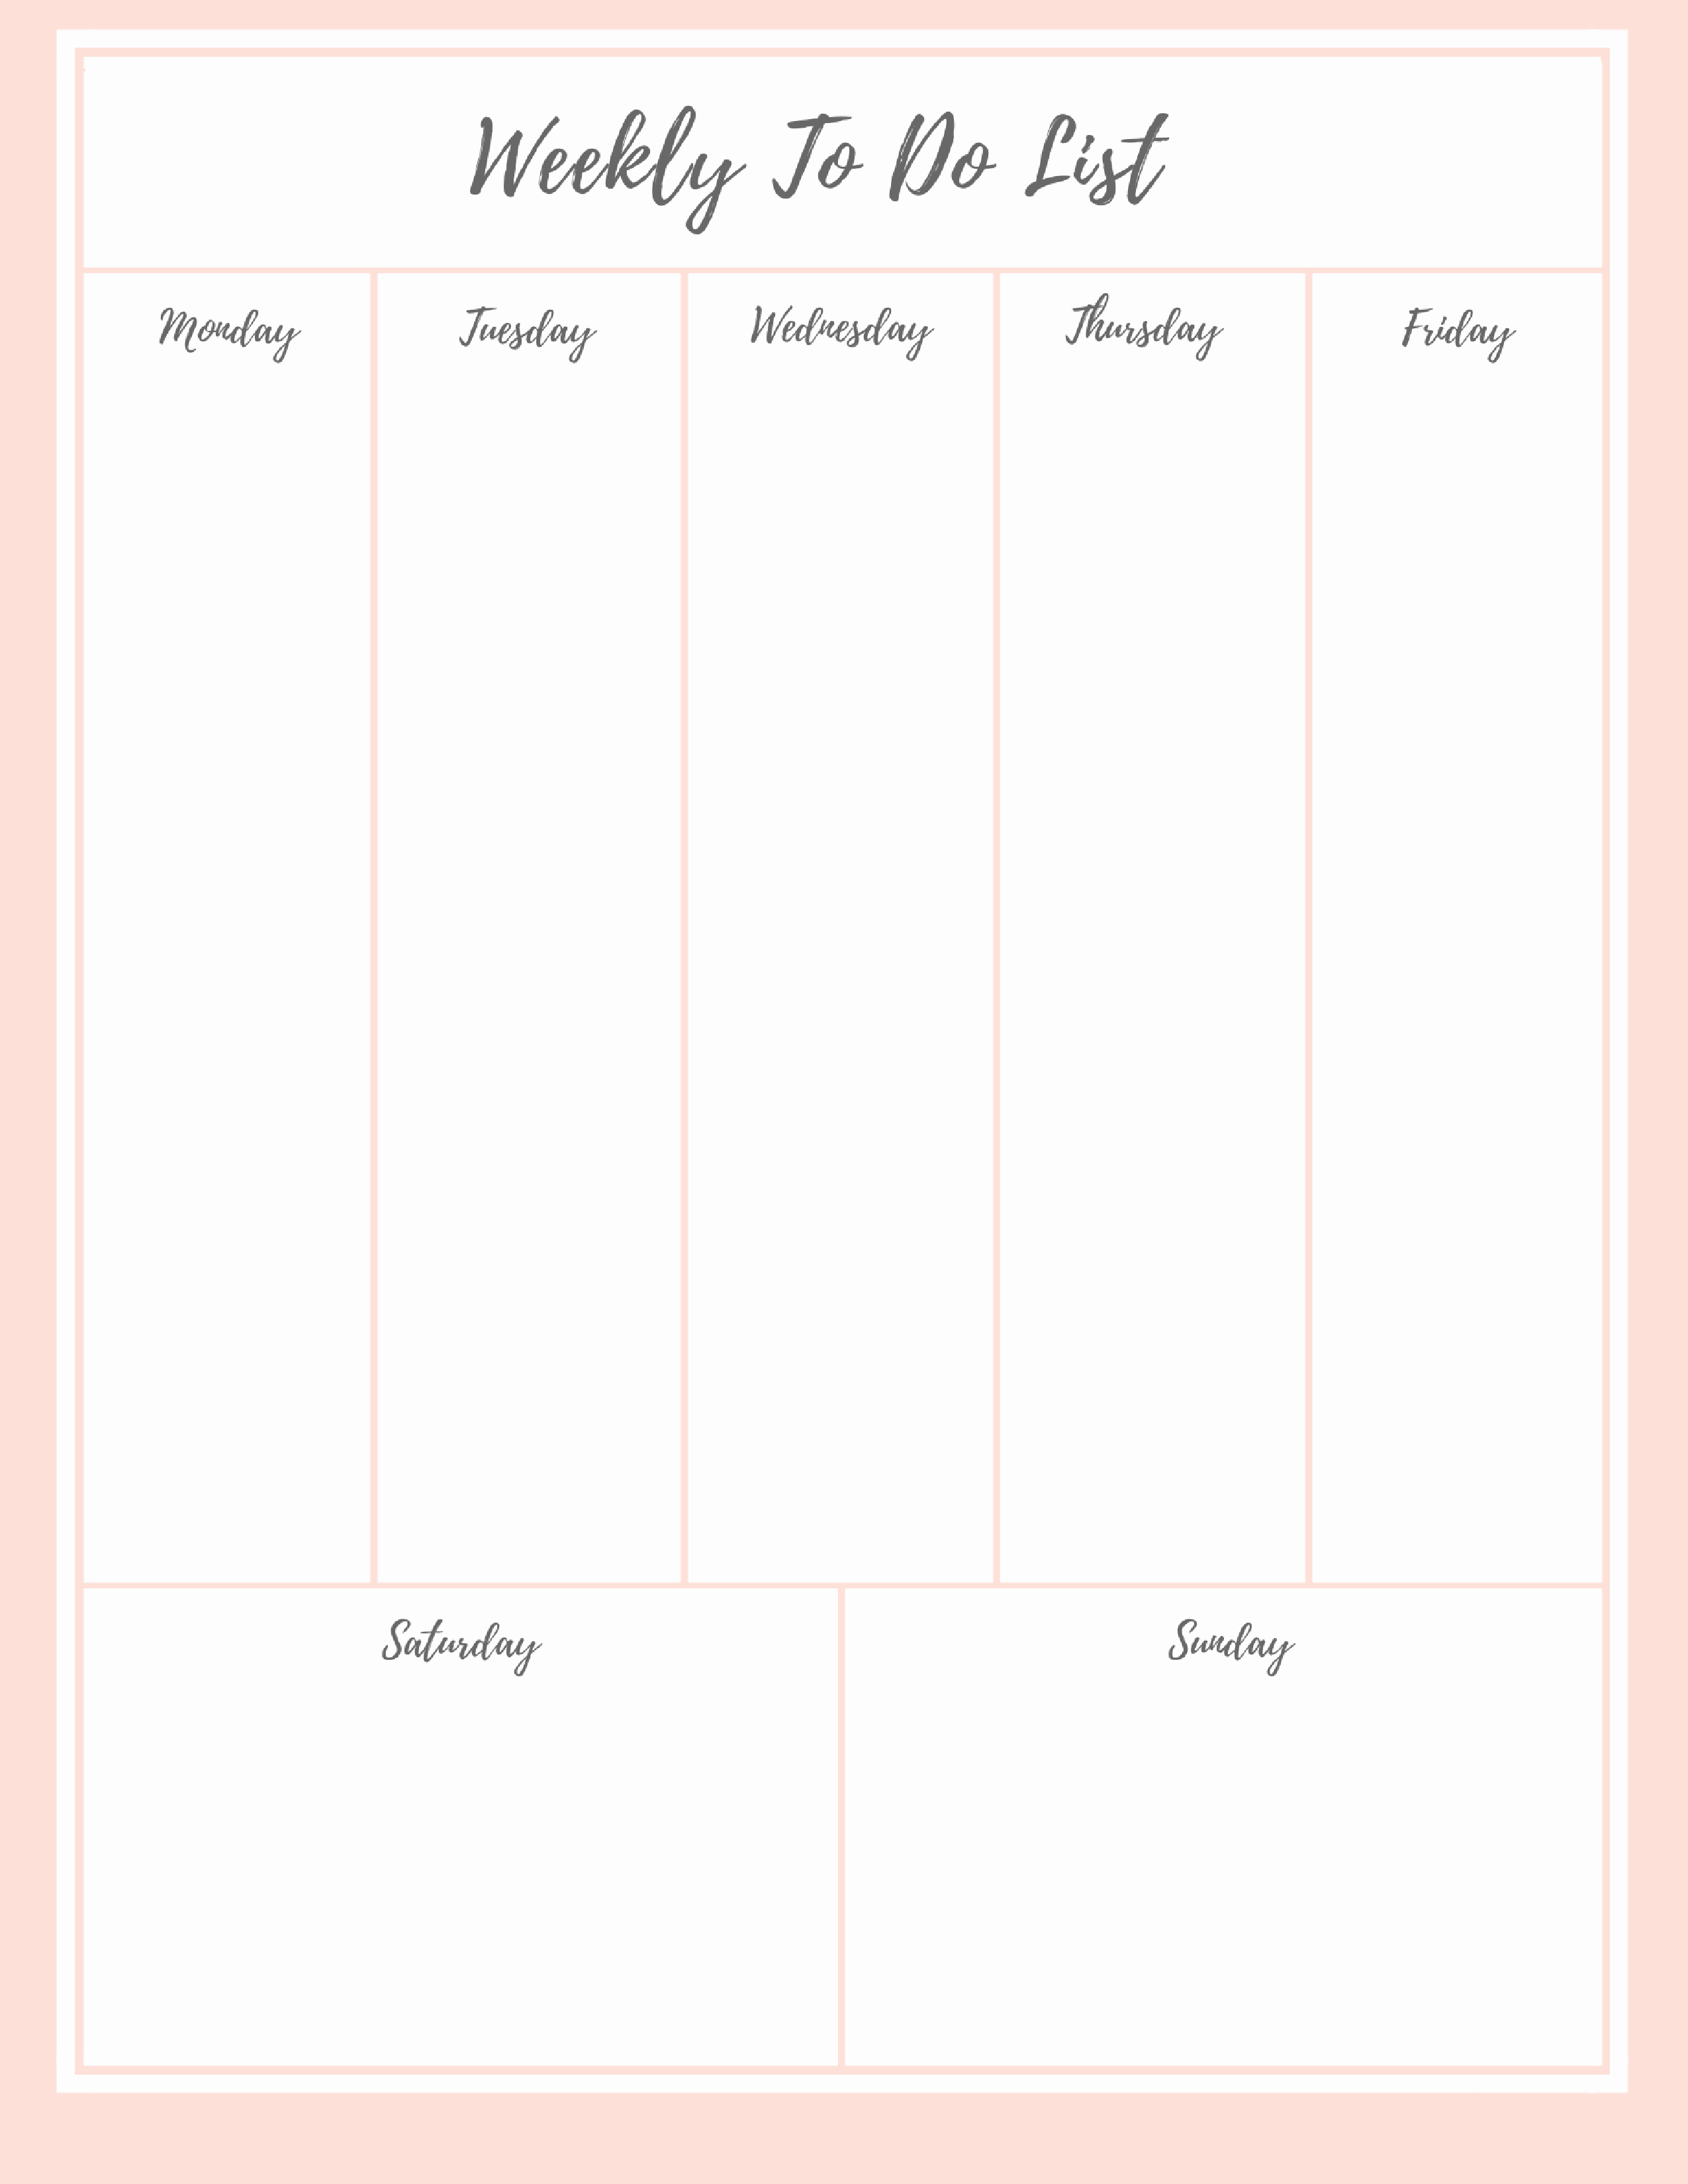 Weekly to Do List Printable Awesome Free Stylish to Do List Plus A Bonus